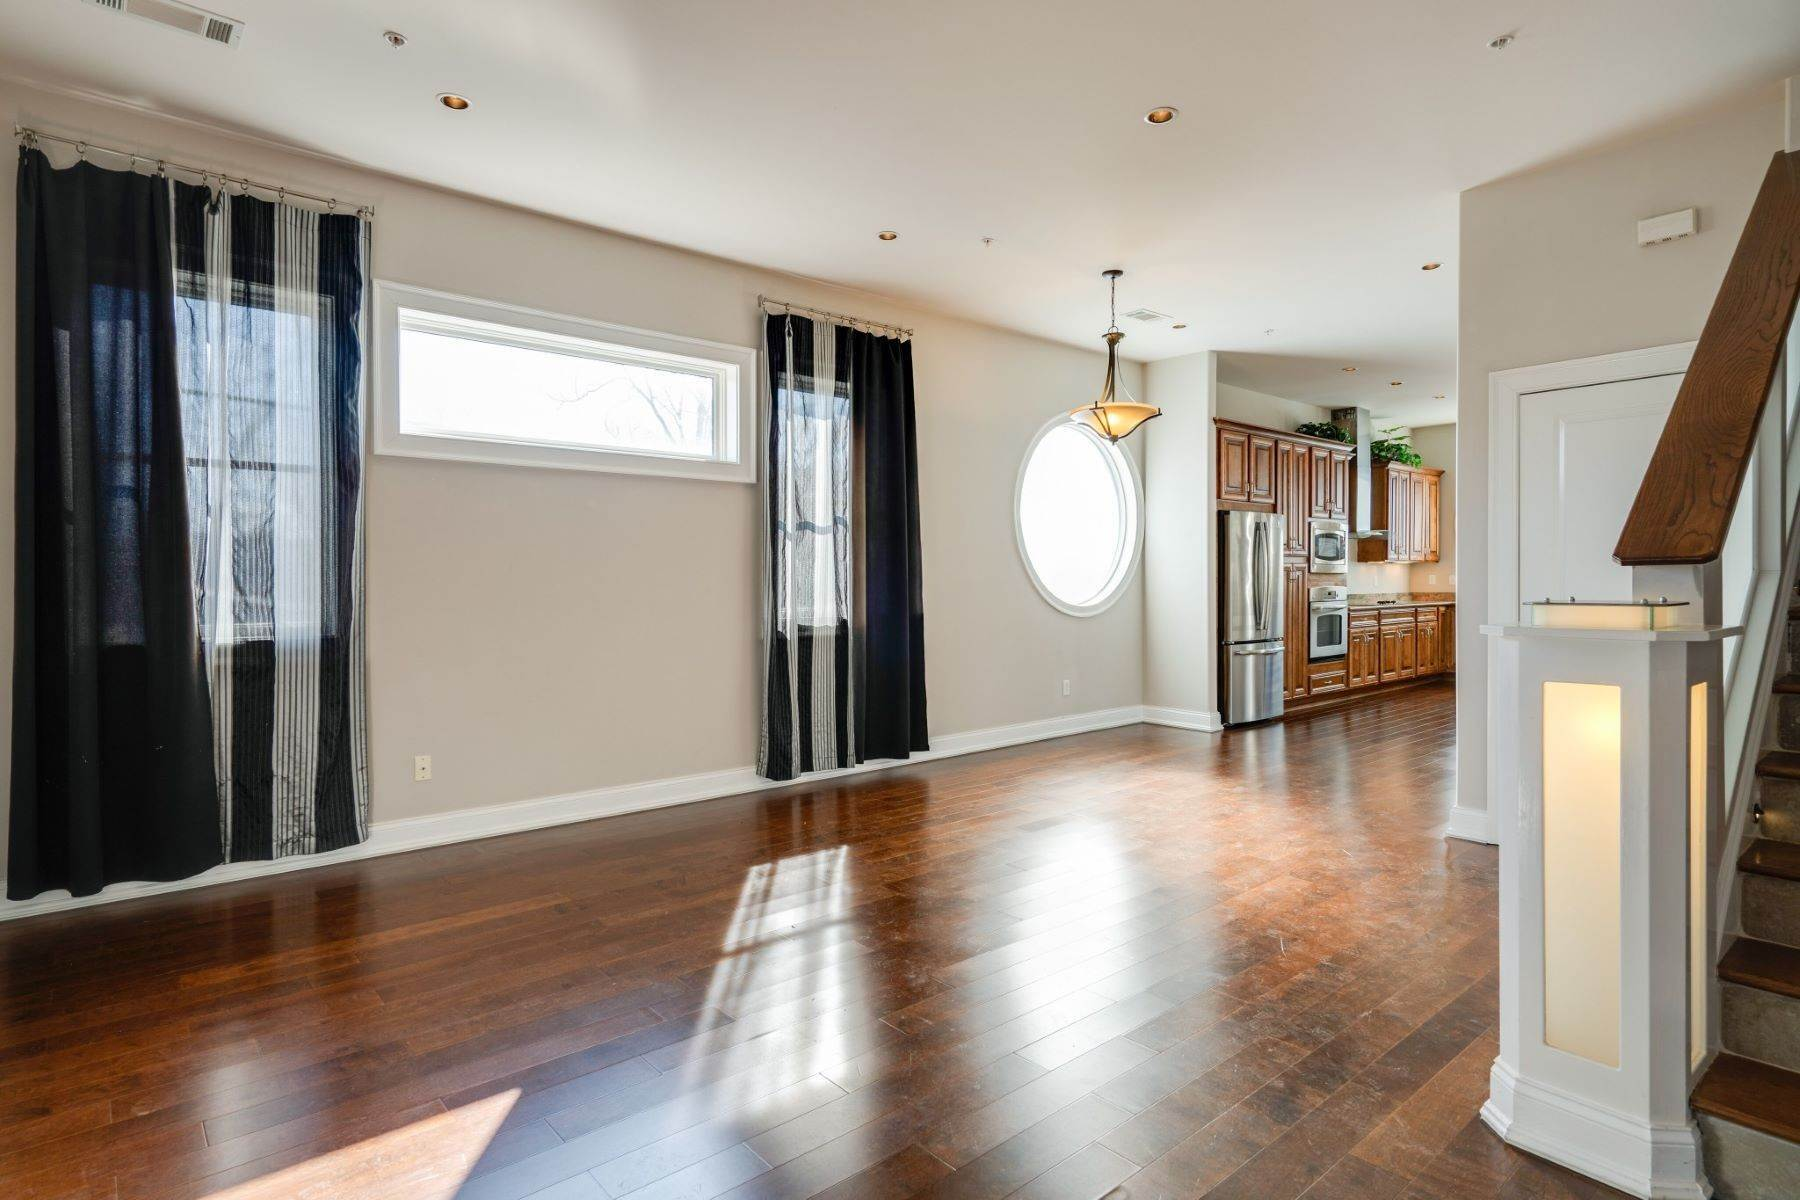 Property for Sale at 2905 Parthenon Ave, Nashville, Tn, 37203 2905 Parthenon Ave, Unit# 109 Nashville, Tennessee 37203 United States